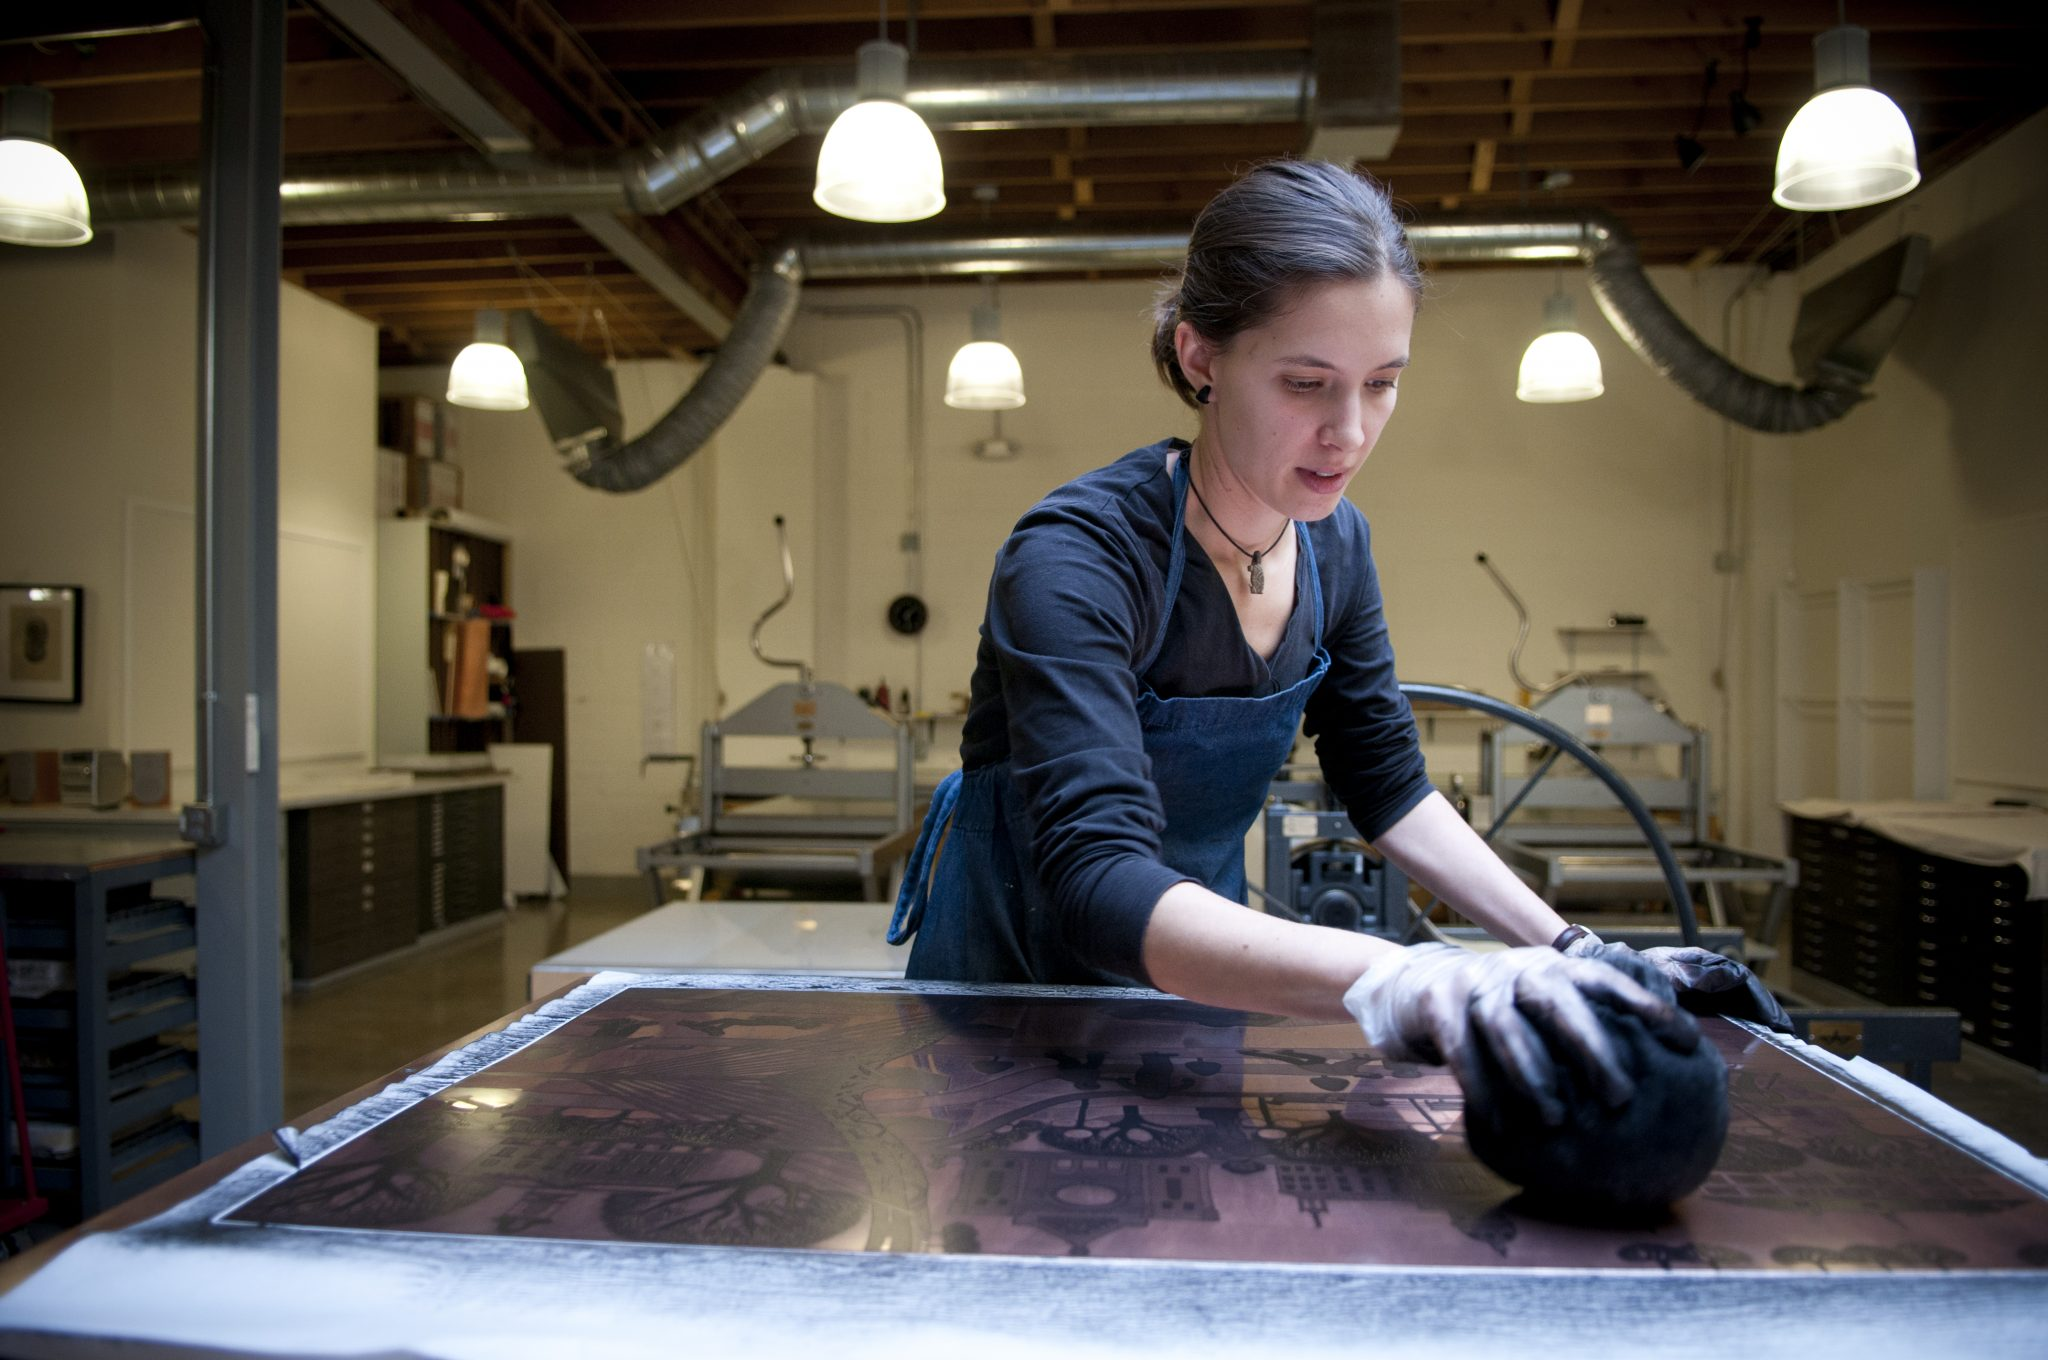 Co-op artist Miriam Rudolf wipes ink on an etching plate, preparing it so she can print on the press.